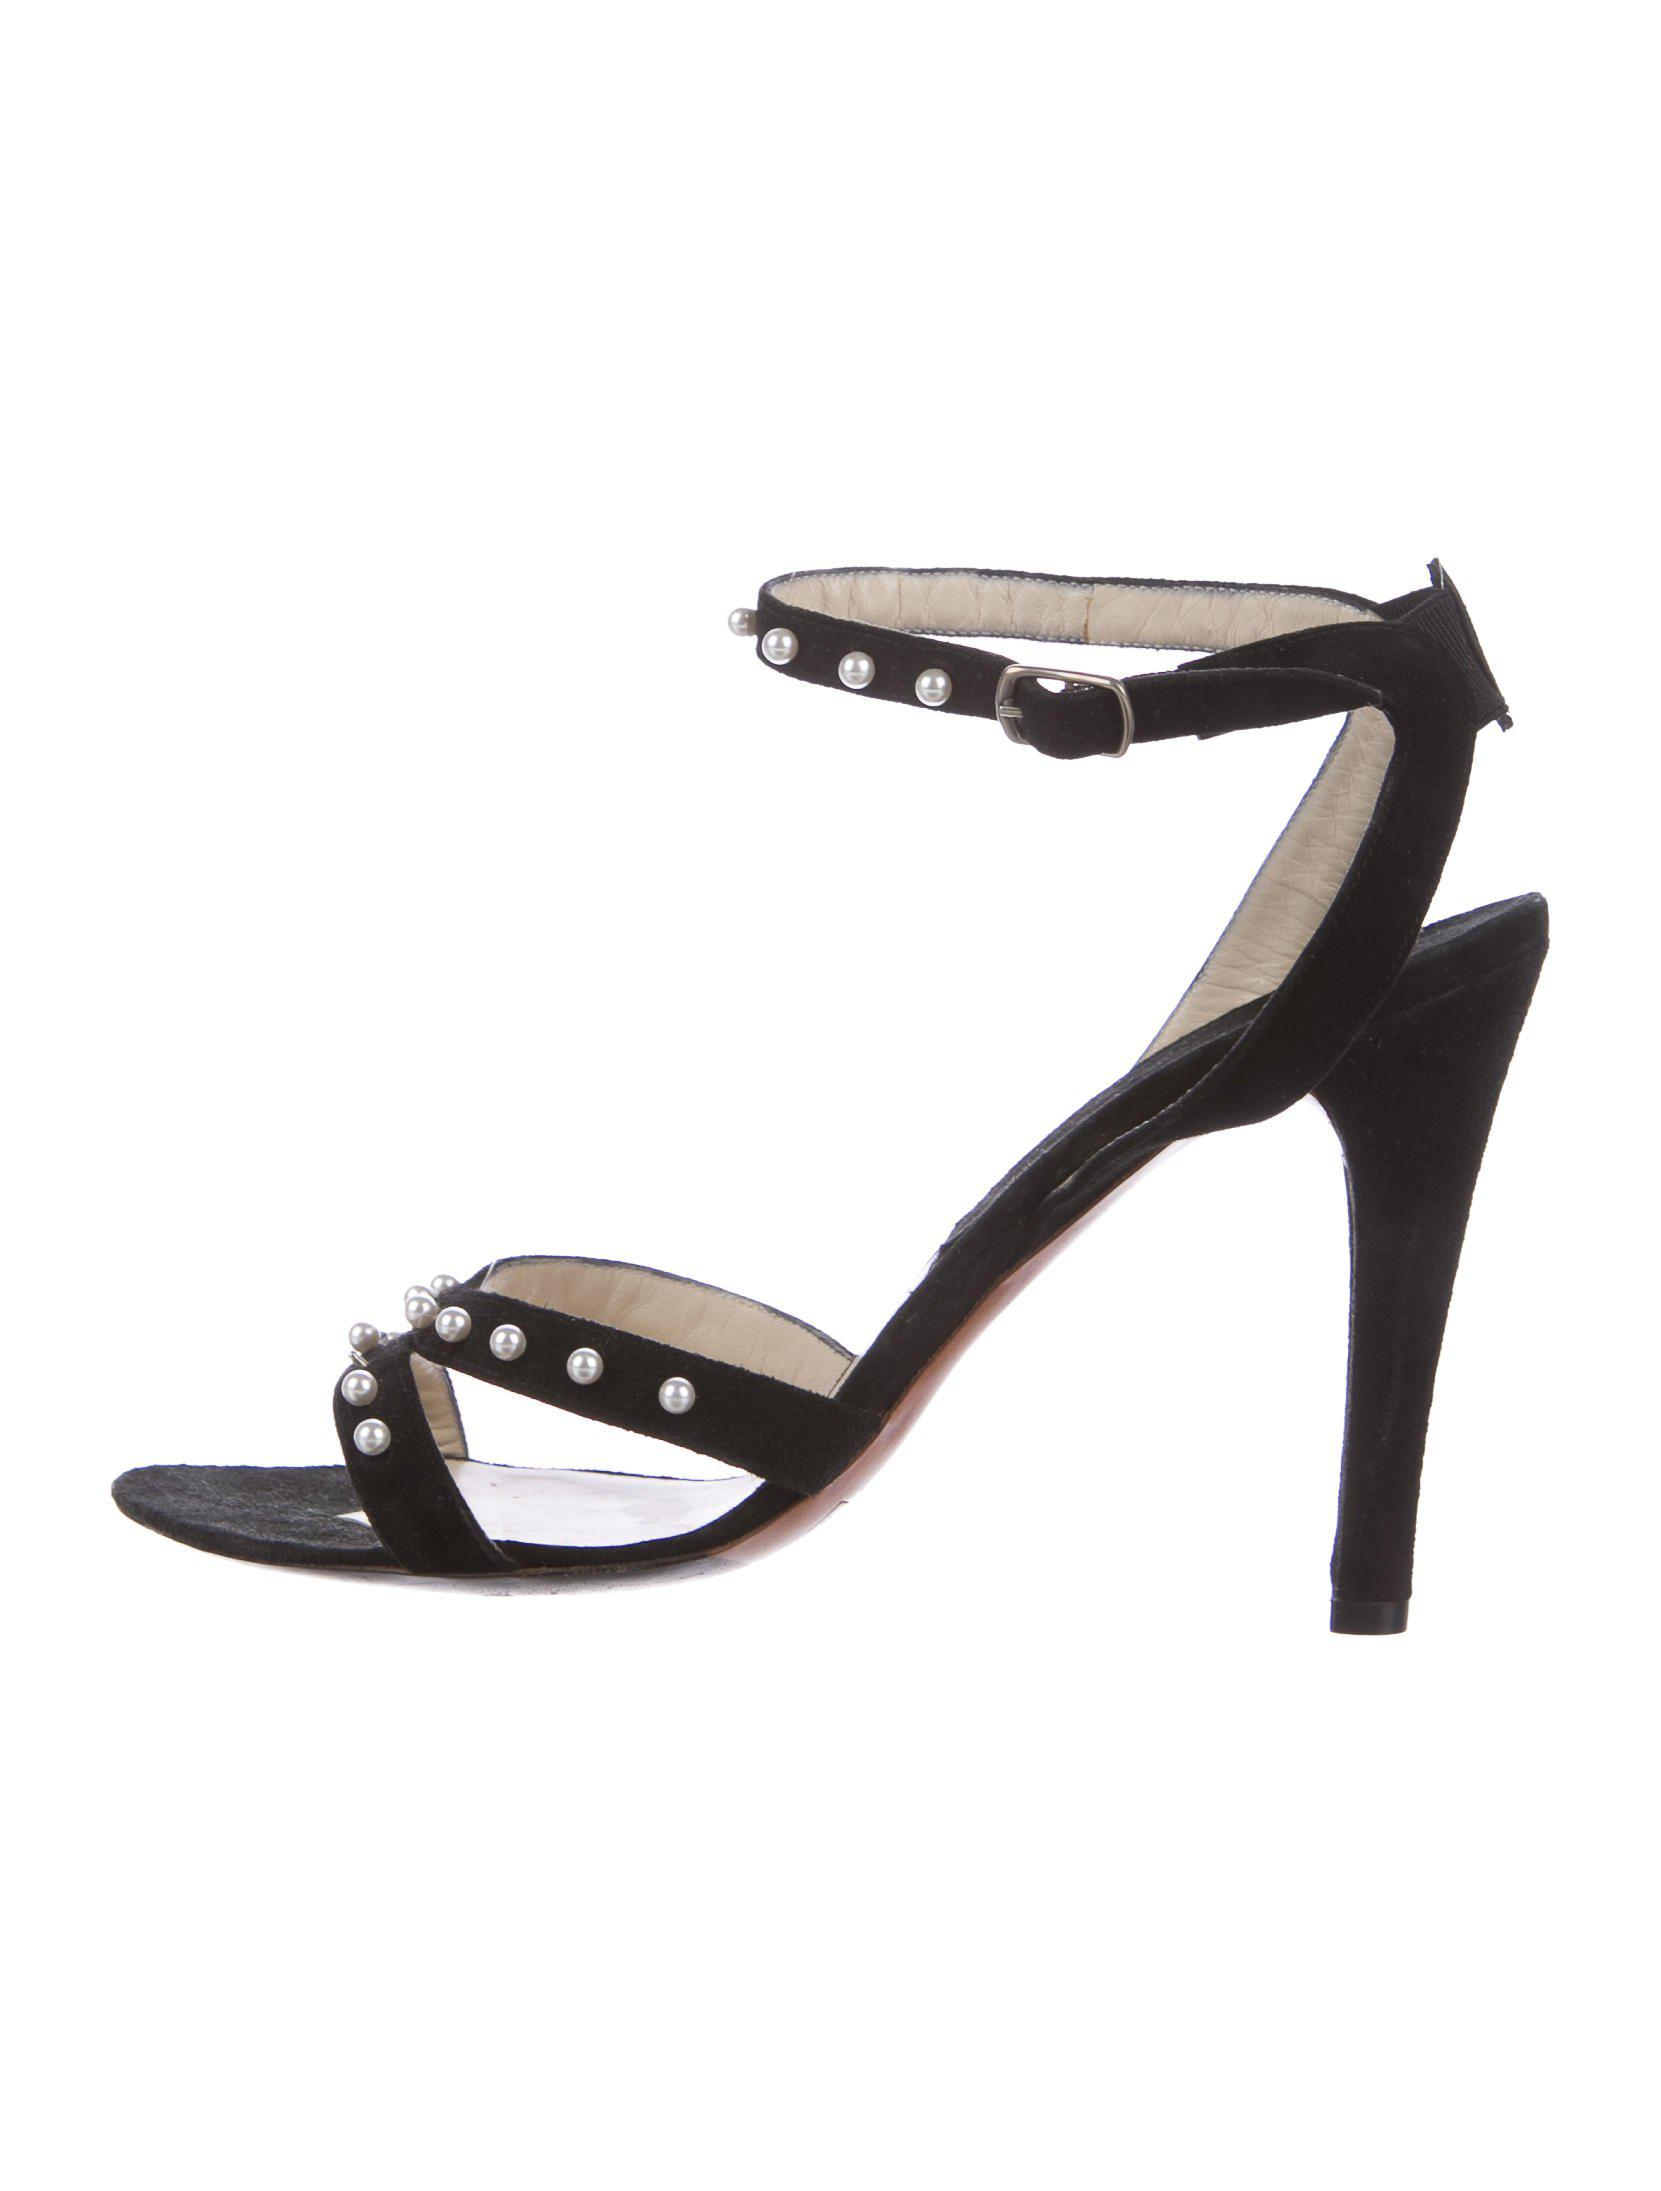 Marc Jacobs Leather Ankle-Strap Sandals buy cheap from china where to buy low price classic rFyckC